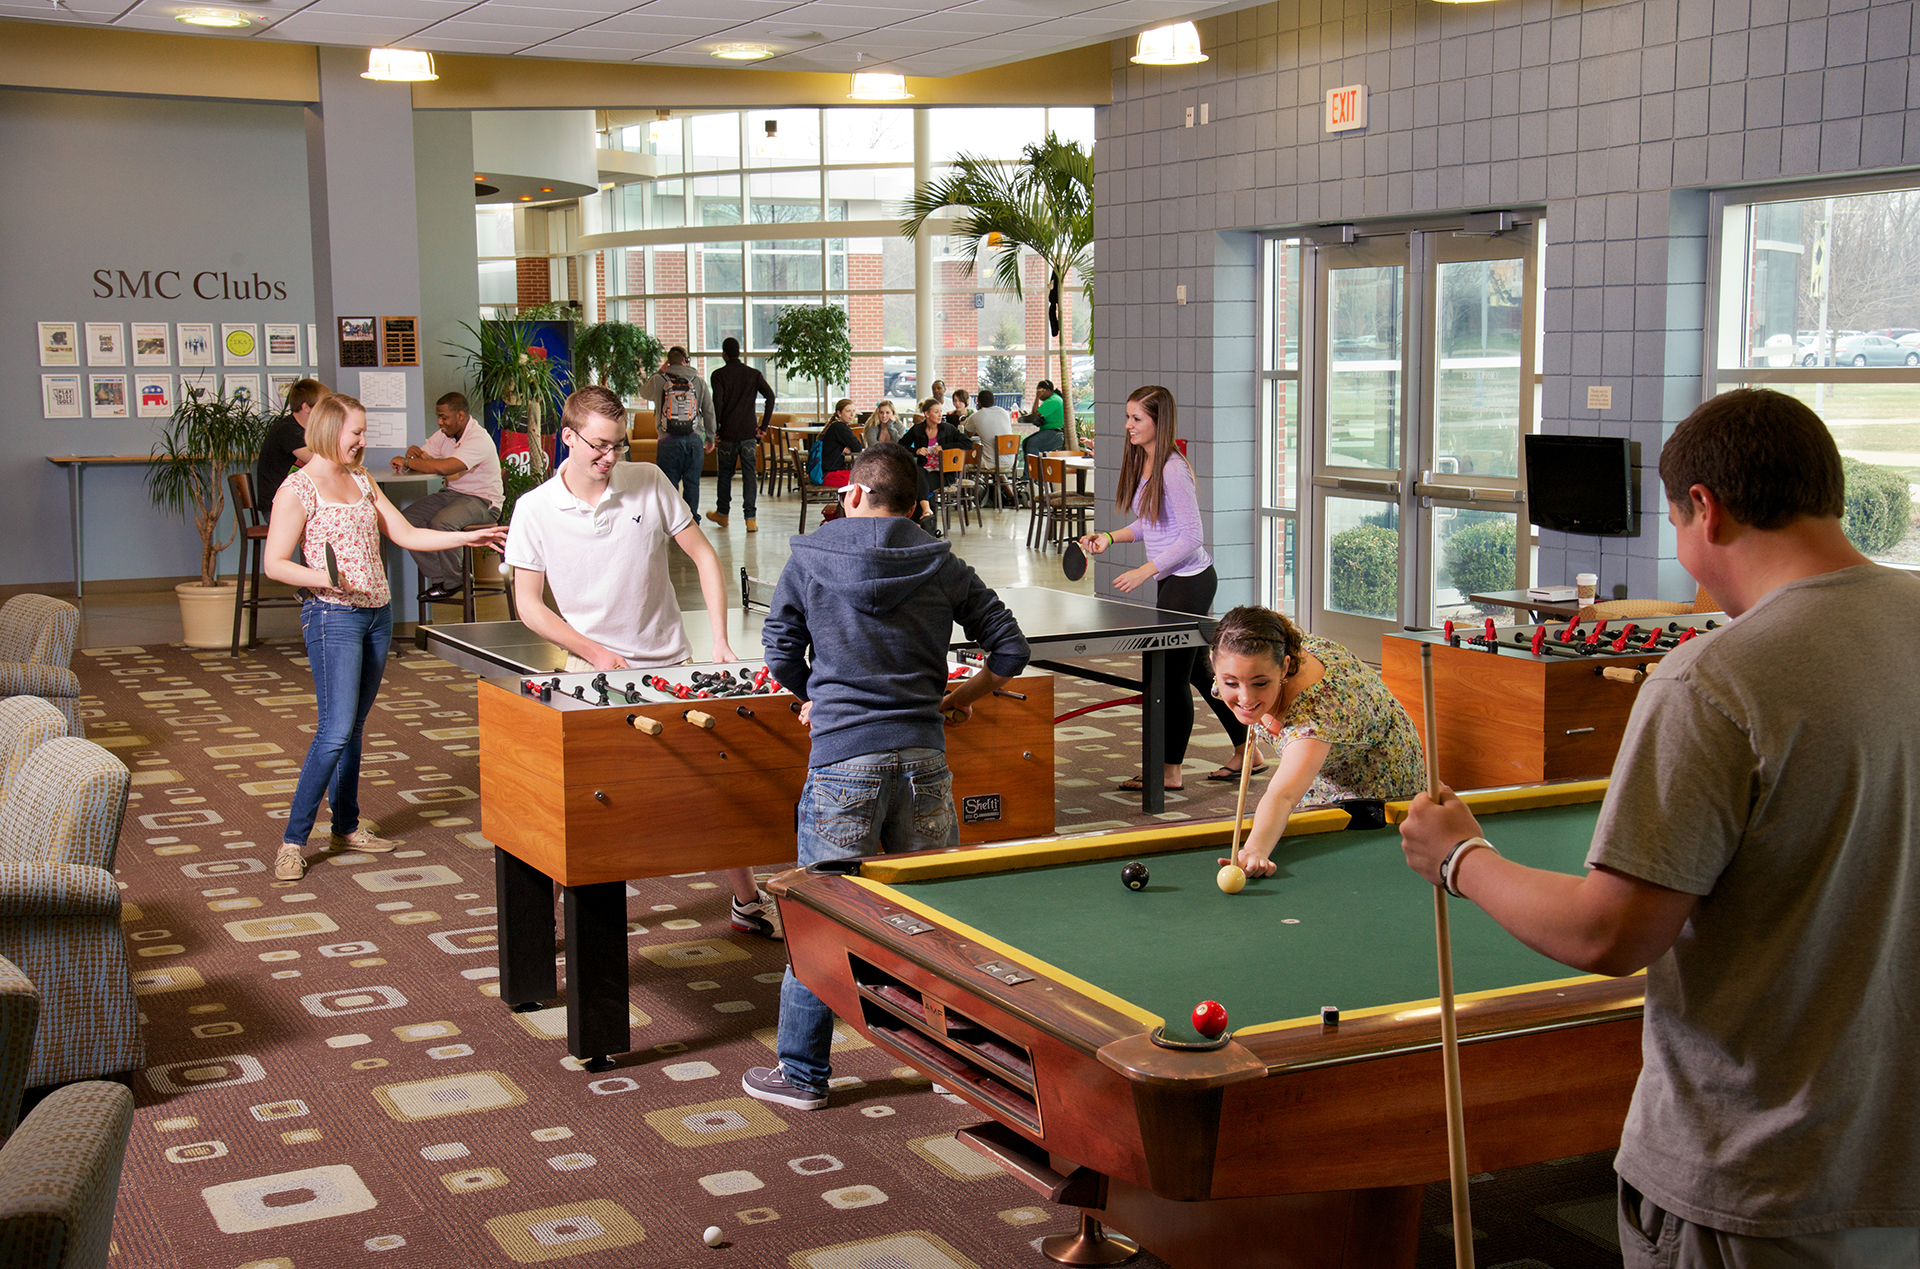 The game room in the SAC